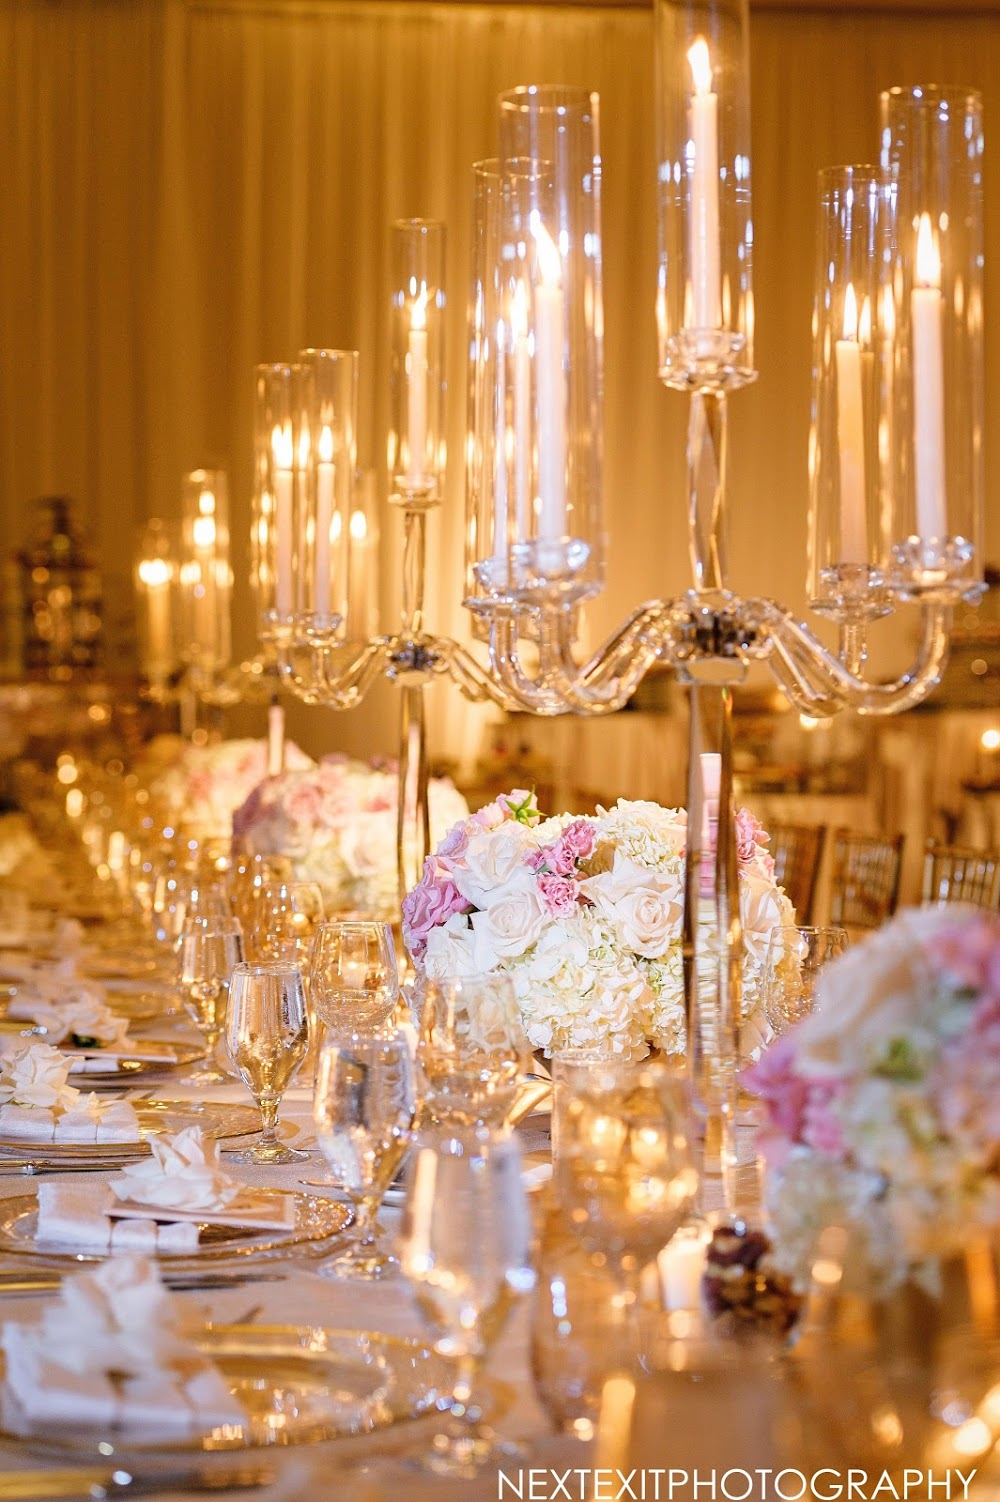 Natalie Sofer Weddings and Events